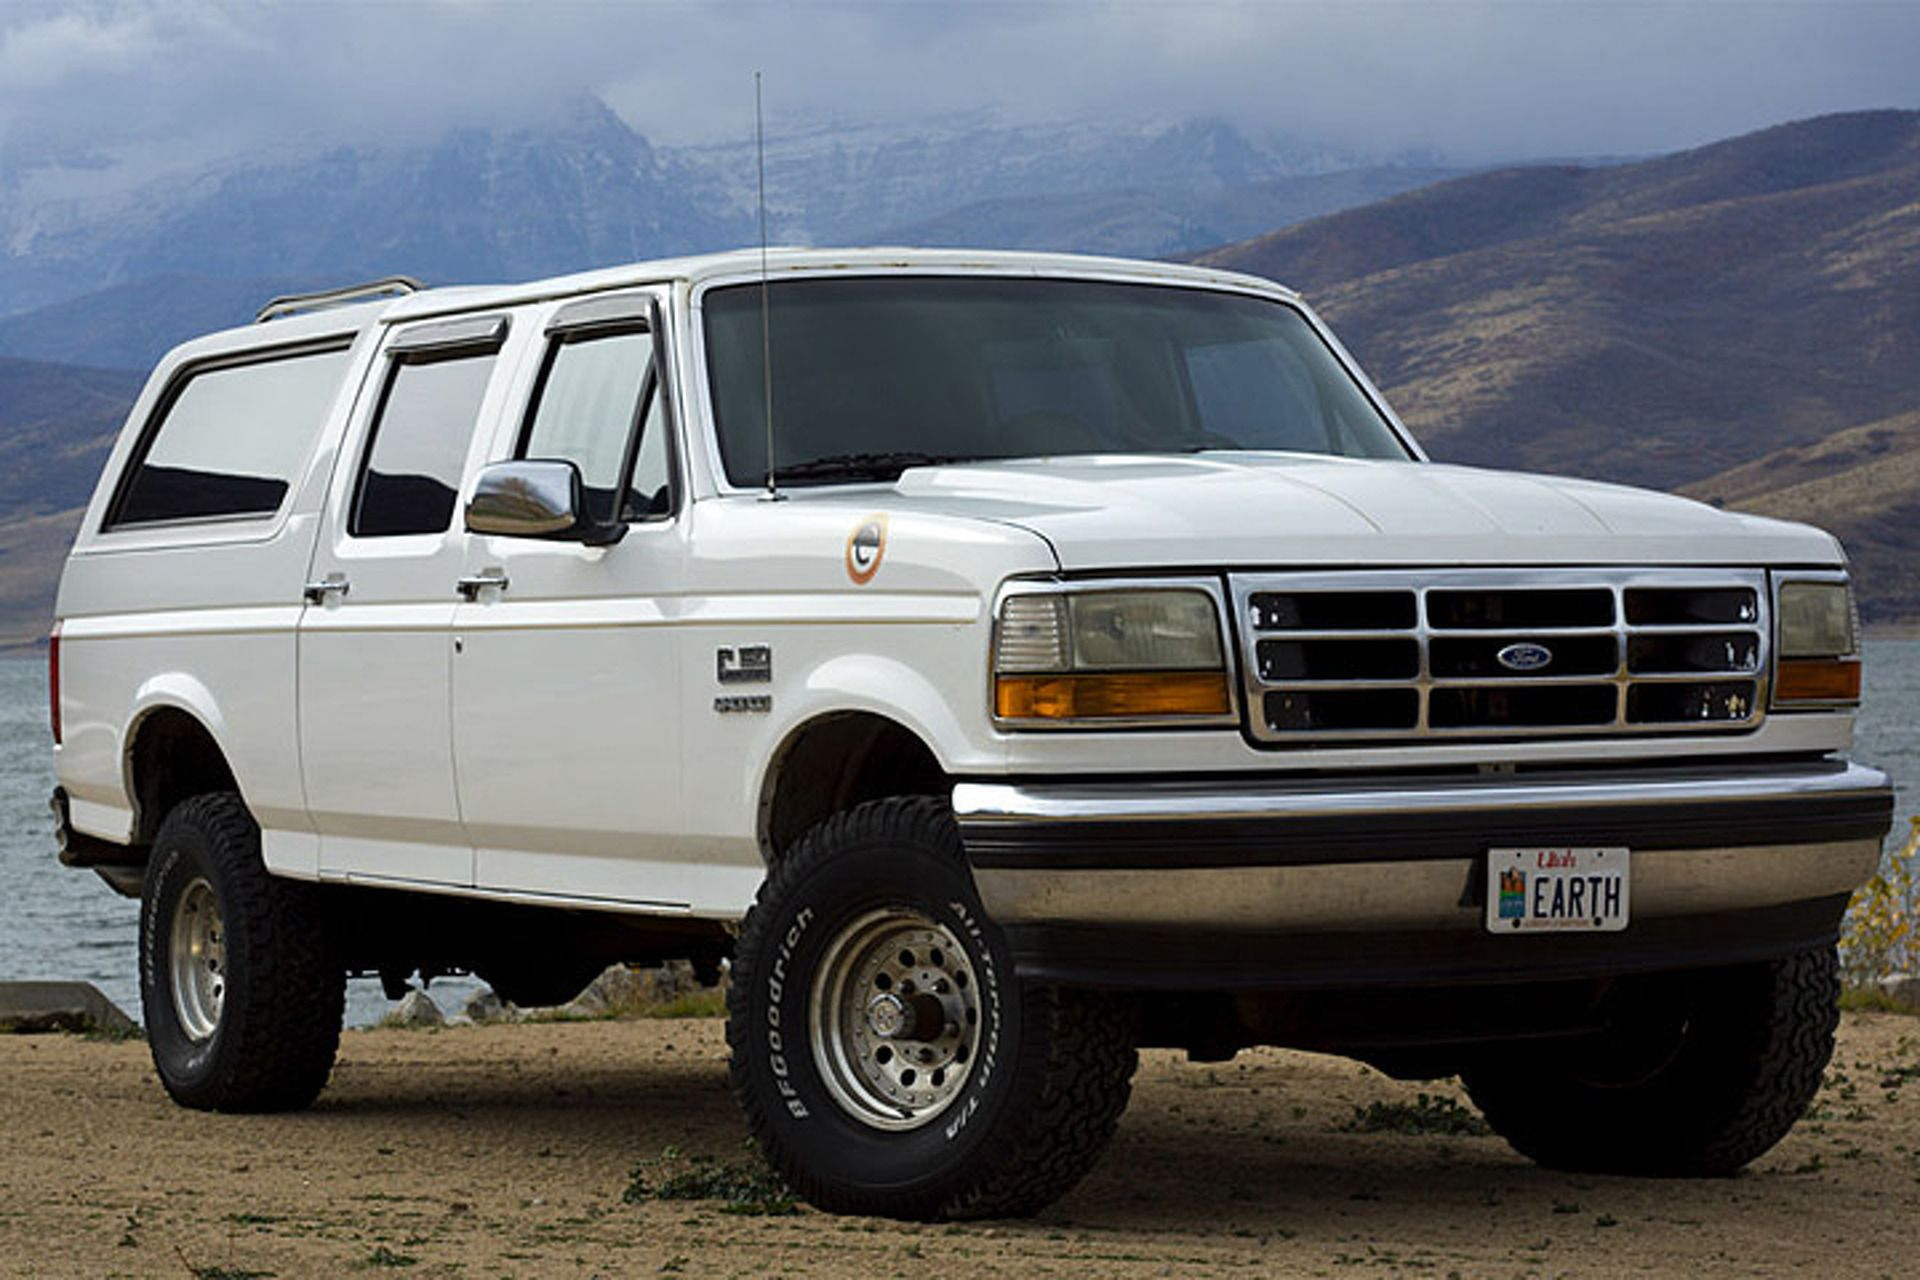 Luxury Ford Suvs 90s Check More At Http Www Toyotasuvsreview Com Ford Suvs 90s